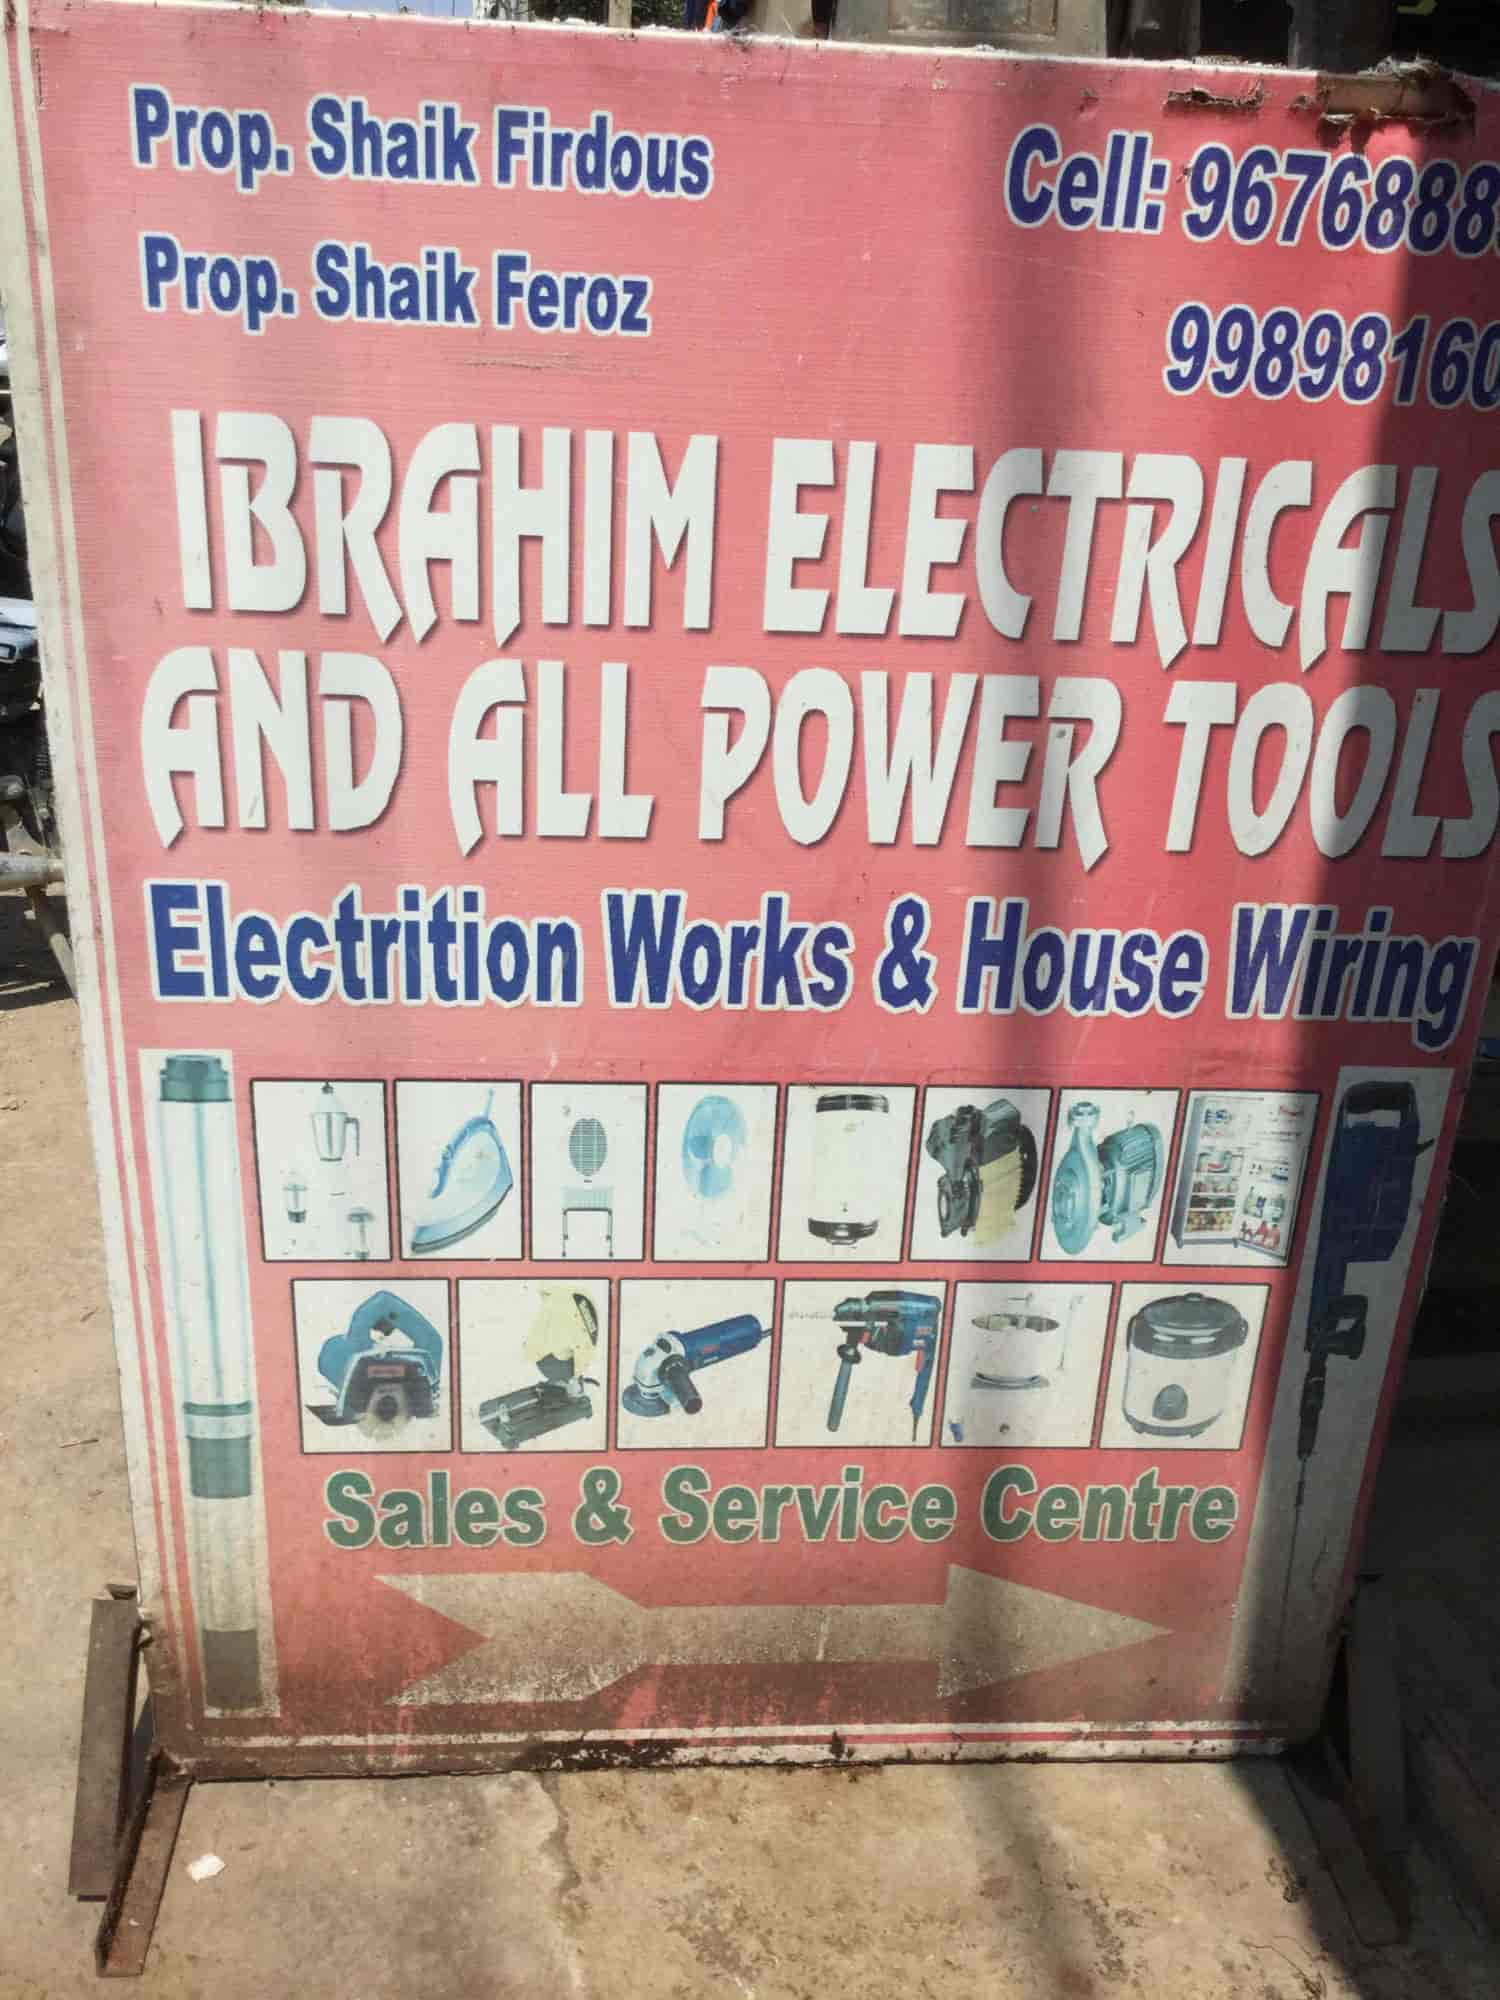 Ibrahim Electrical Power Tools Photos Kphb Colony Hyderabad House Wiring Motor Repair Services